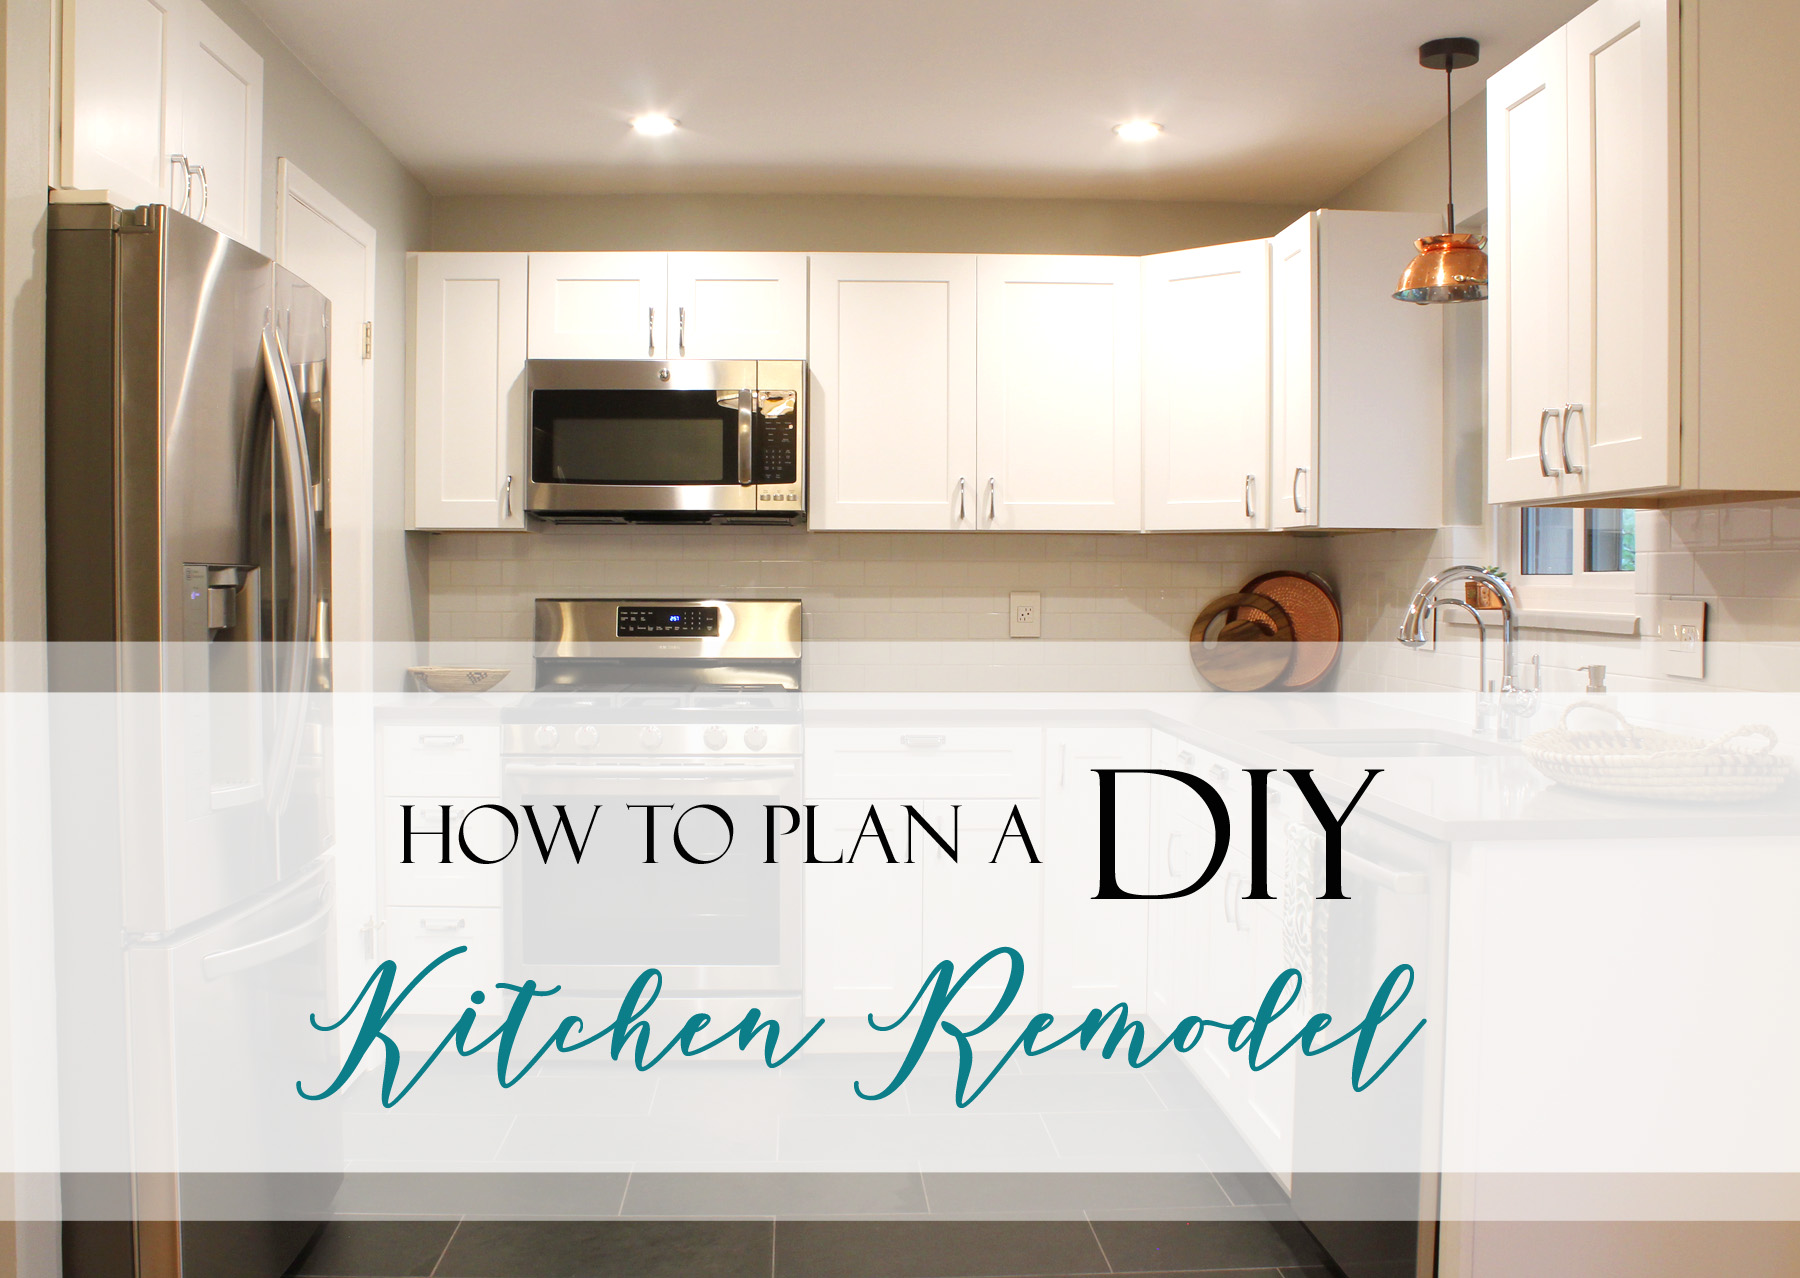 How To Plan A Diy Kitchen Remodel List In Progress